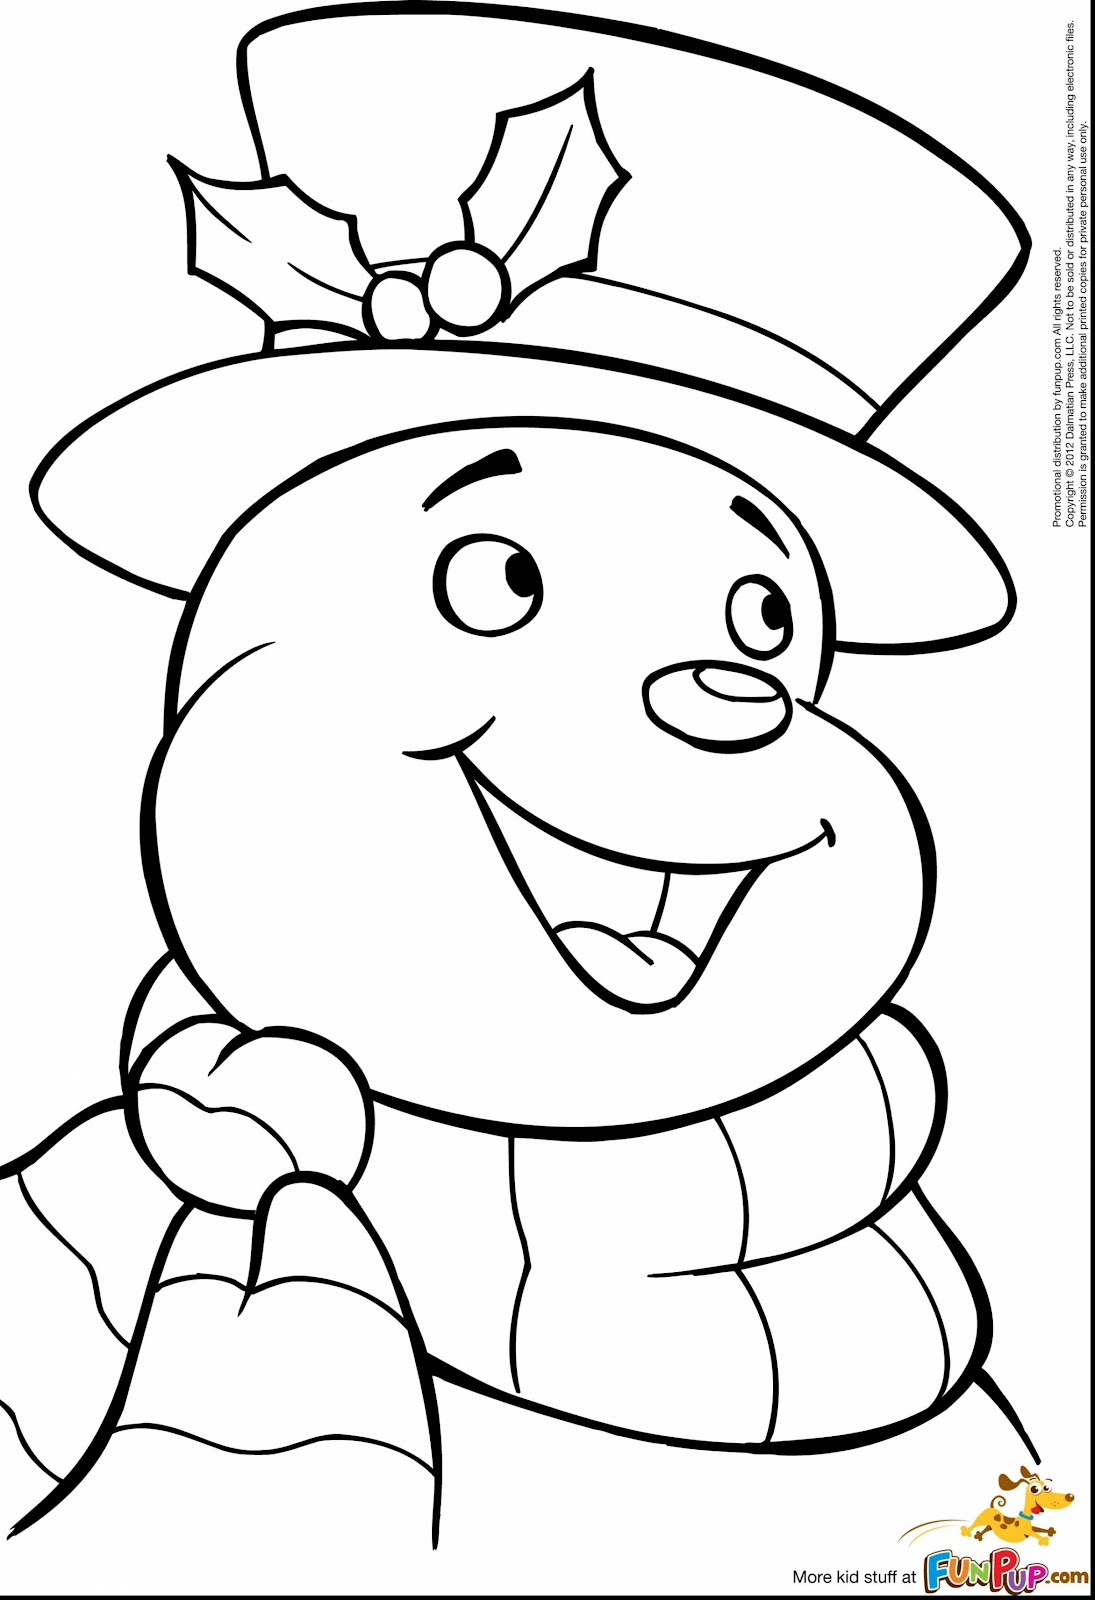 Best Olaf The Snowman Coloring Pages Photos - Coloring ... Olaf Snowman Coloring Page